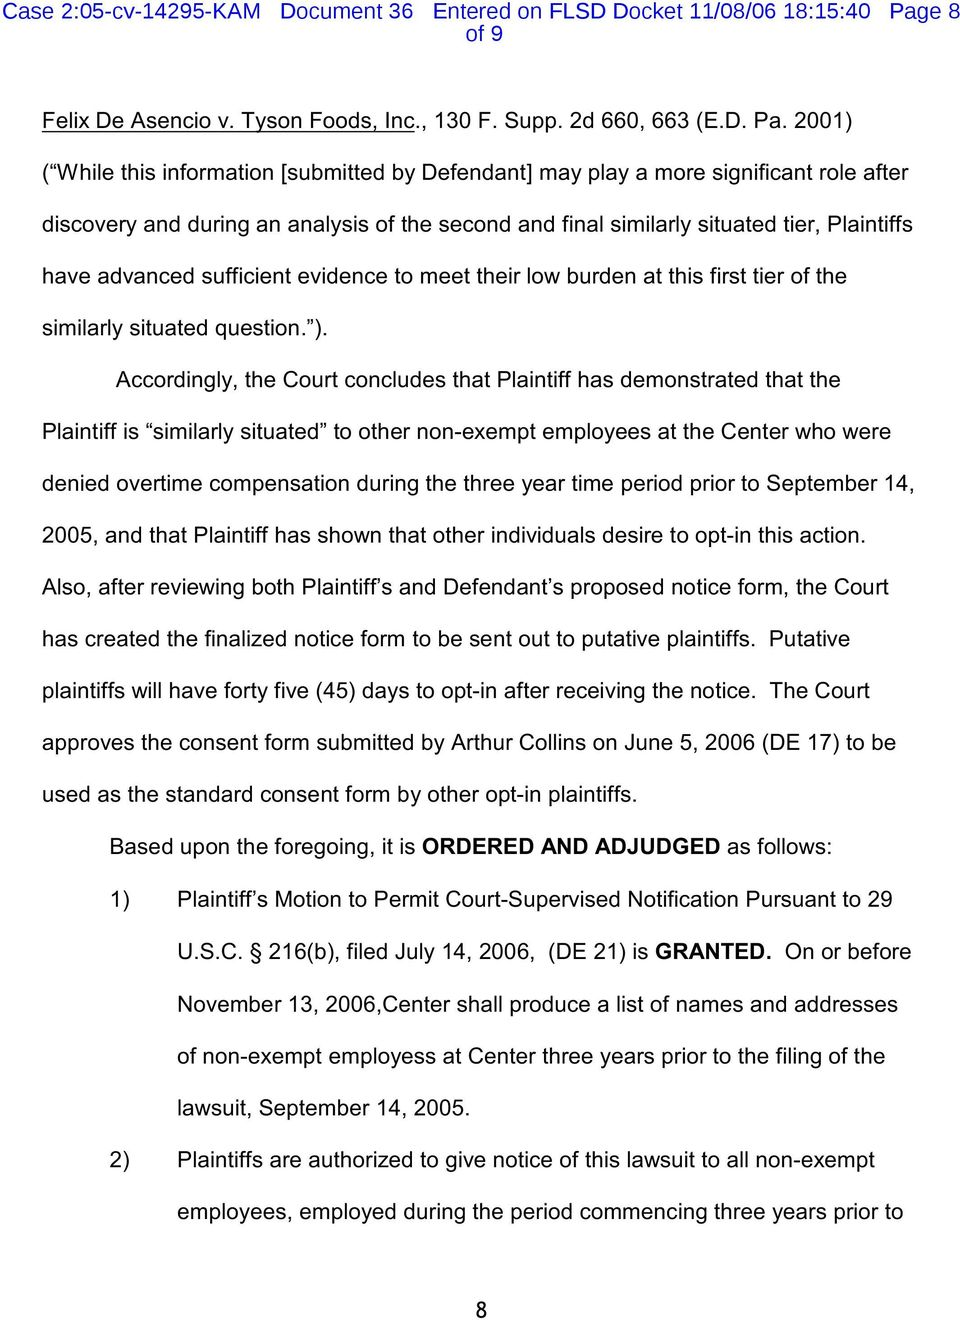 2001) ( While this information [submitted by Defendant] may play a more significant role after discovery and during an analysis of the second and final similarly situated tier, Plaintiffs have